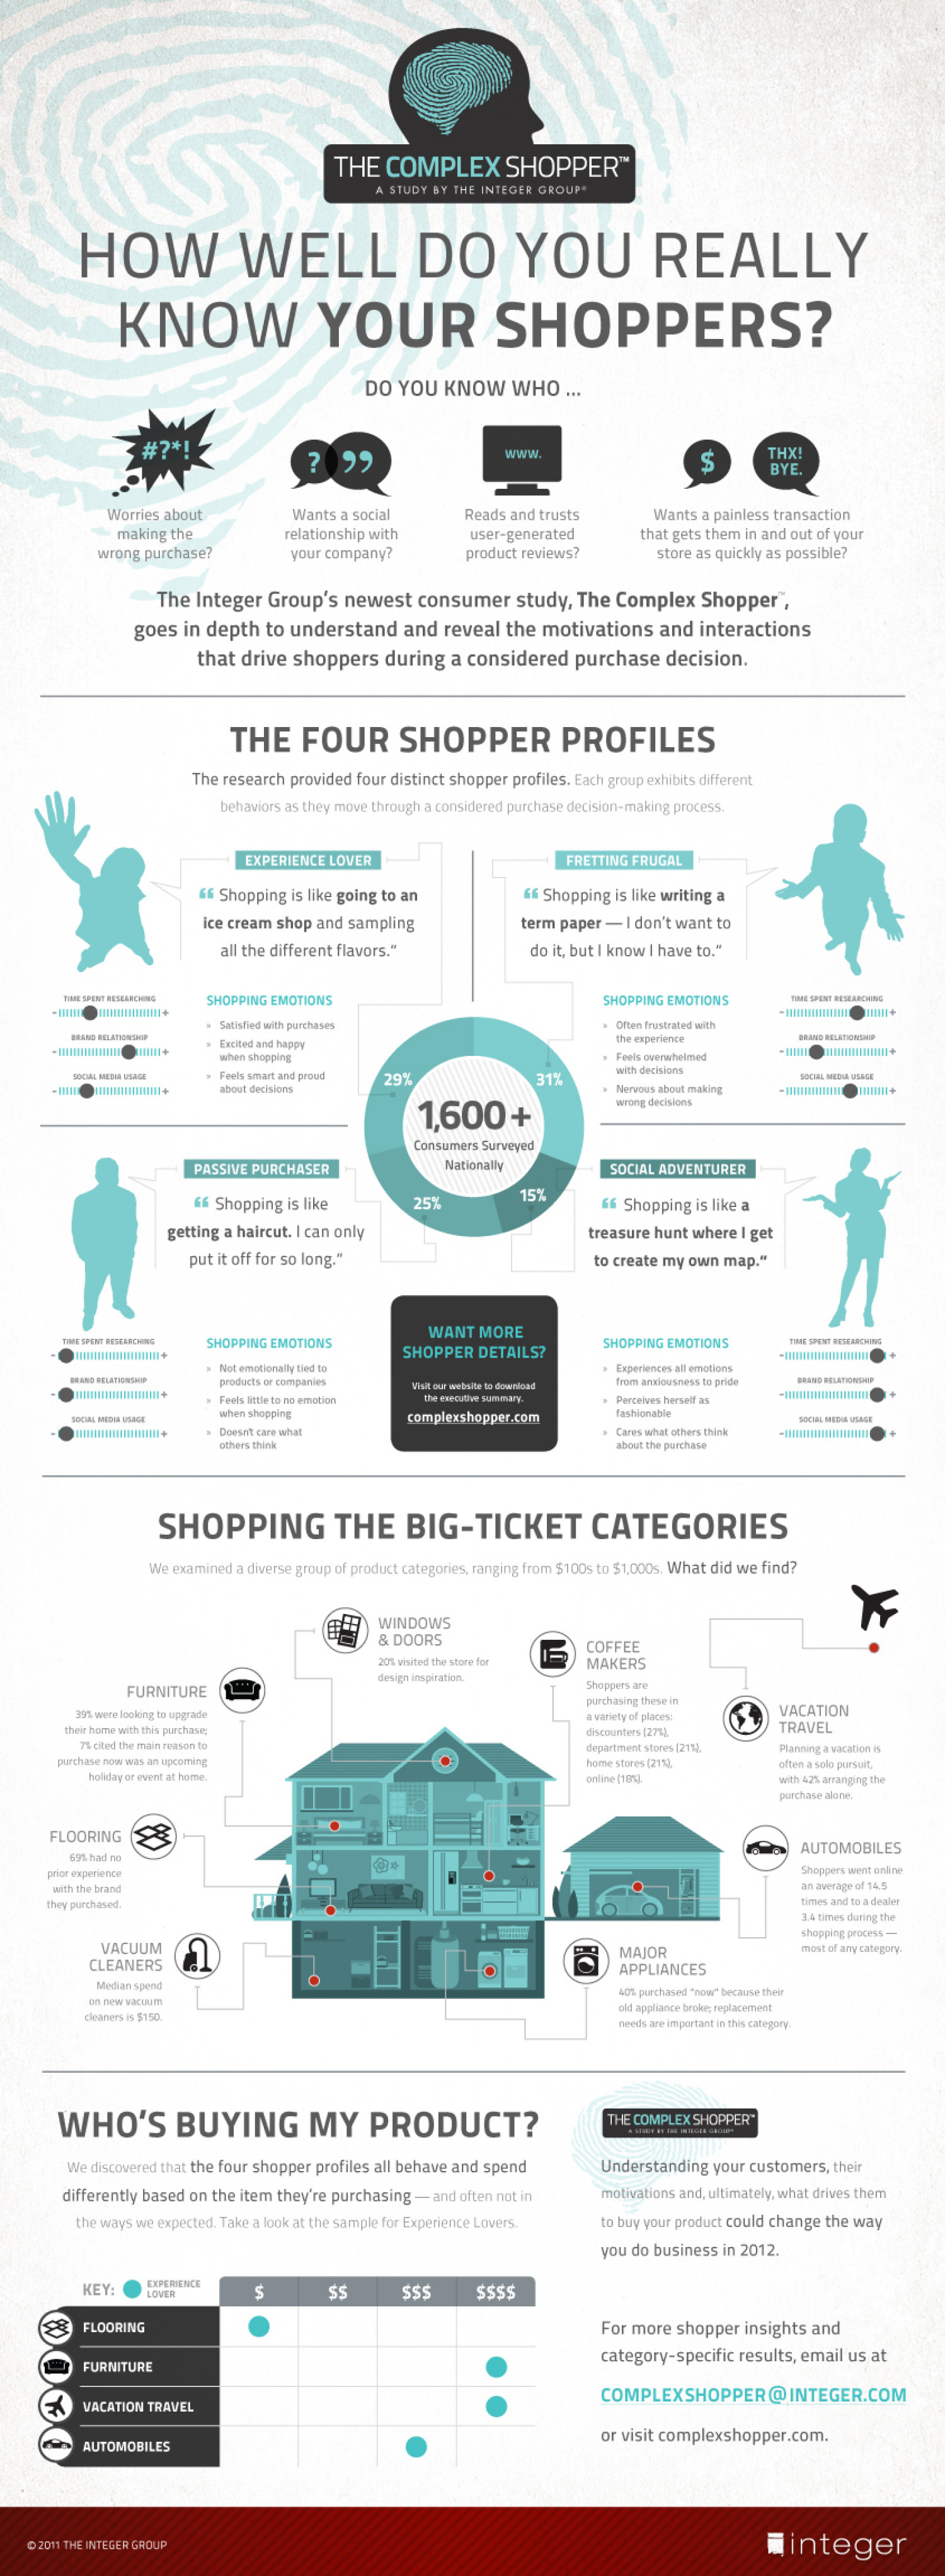 The Complex Shopper Infographic